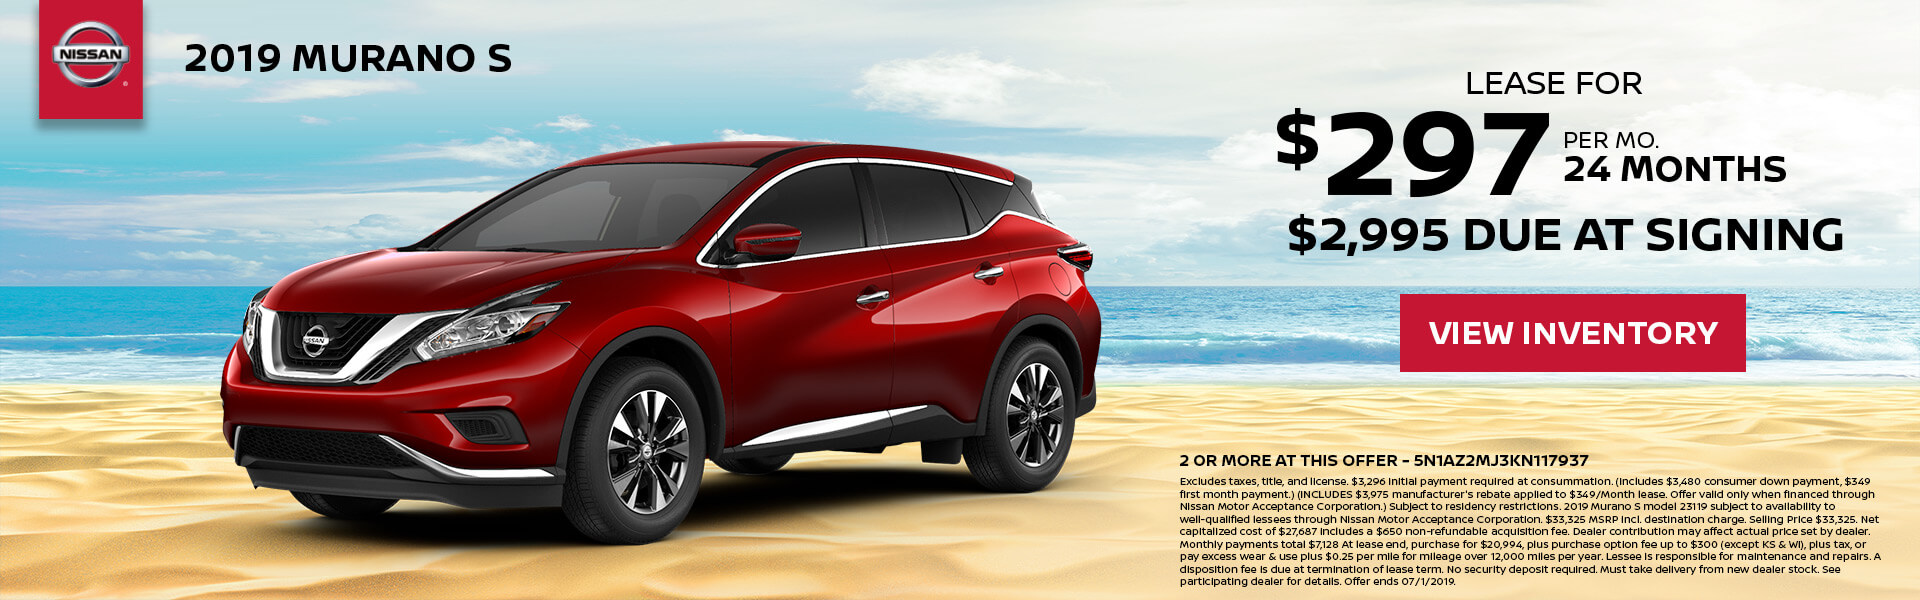 2019 Nissan Murano Lease for $297 for